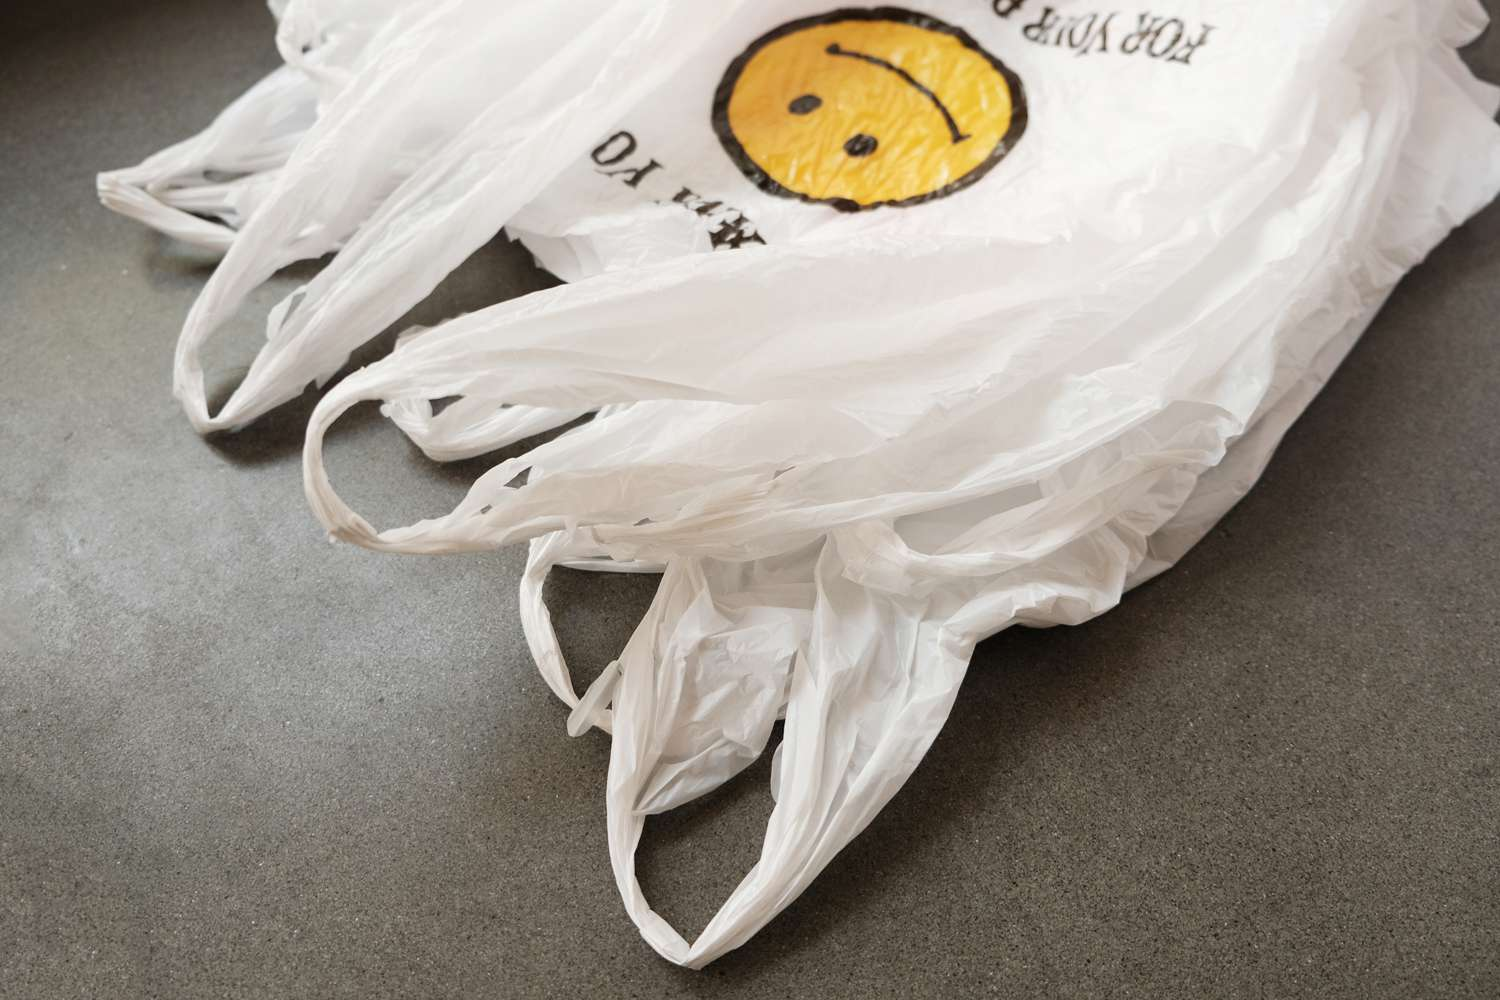 empty plastic bags on gray surface